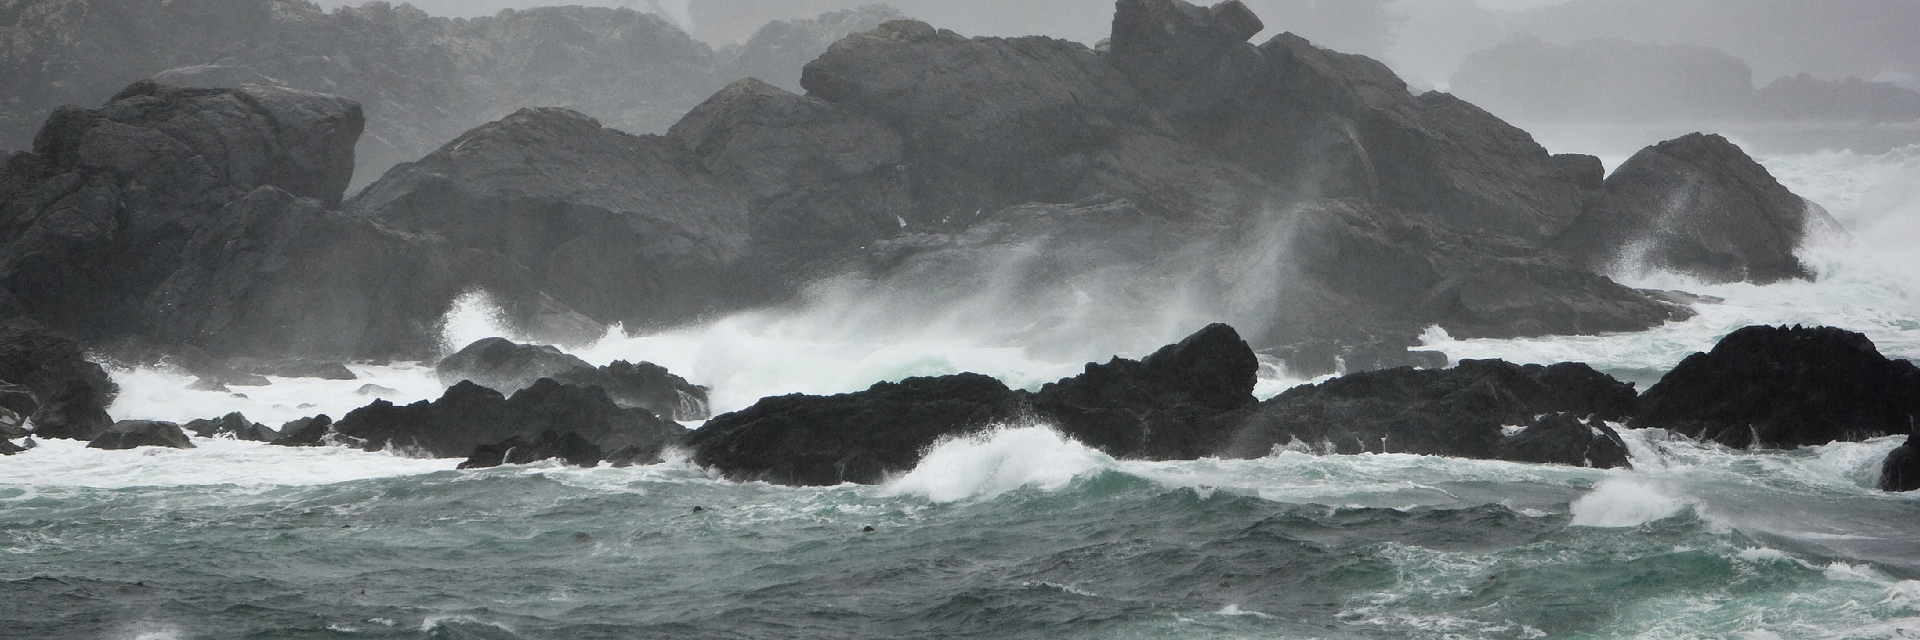 Pounding storm surge meets immovable rock outcroppings on Ucluelet's Wild Pacific Trail